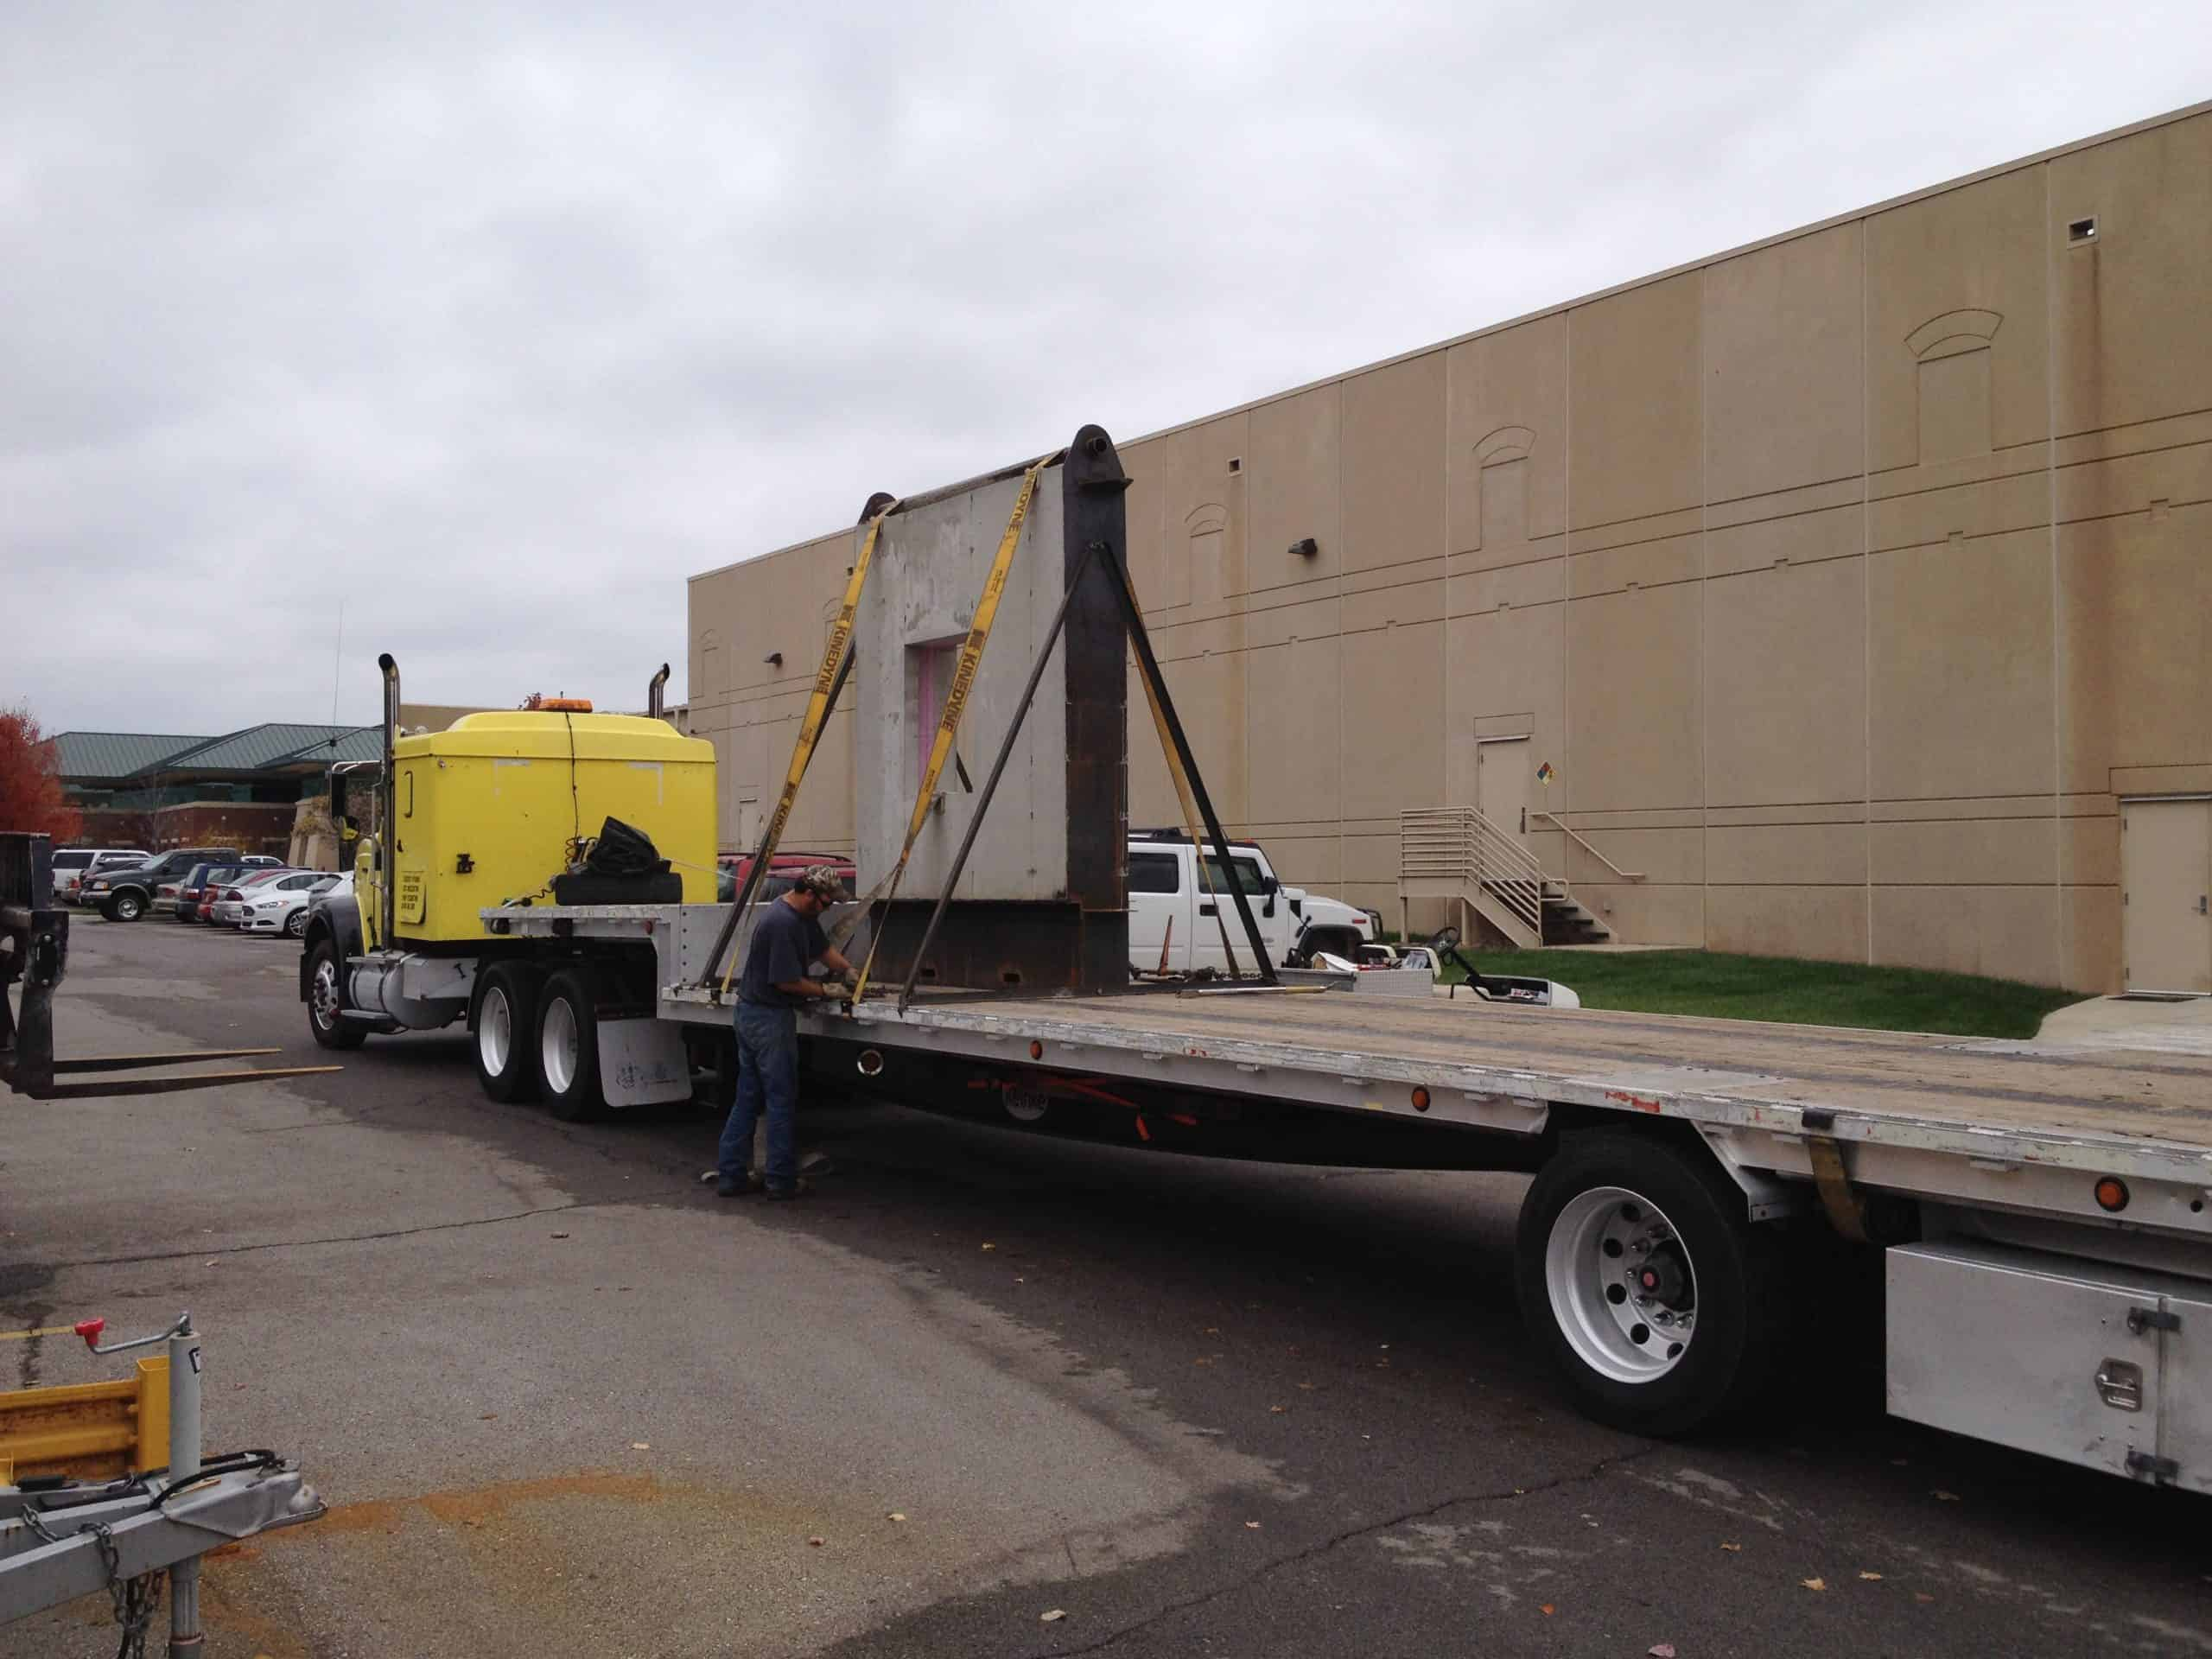 The mock-up wall and window assembly was delivered to PROSOCO headquarters in Lawrence, Kan., to be evaluated in a testing chamber.